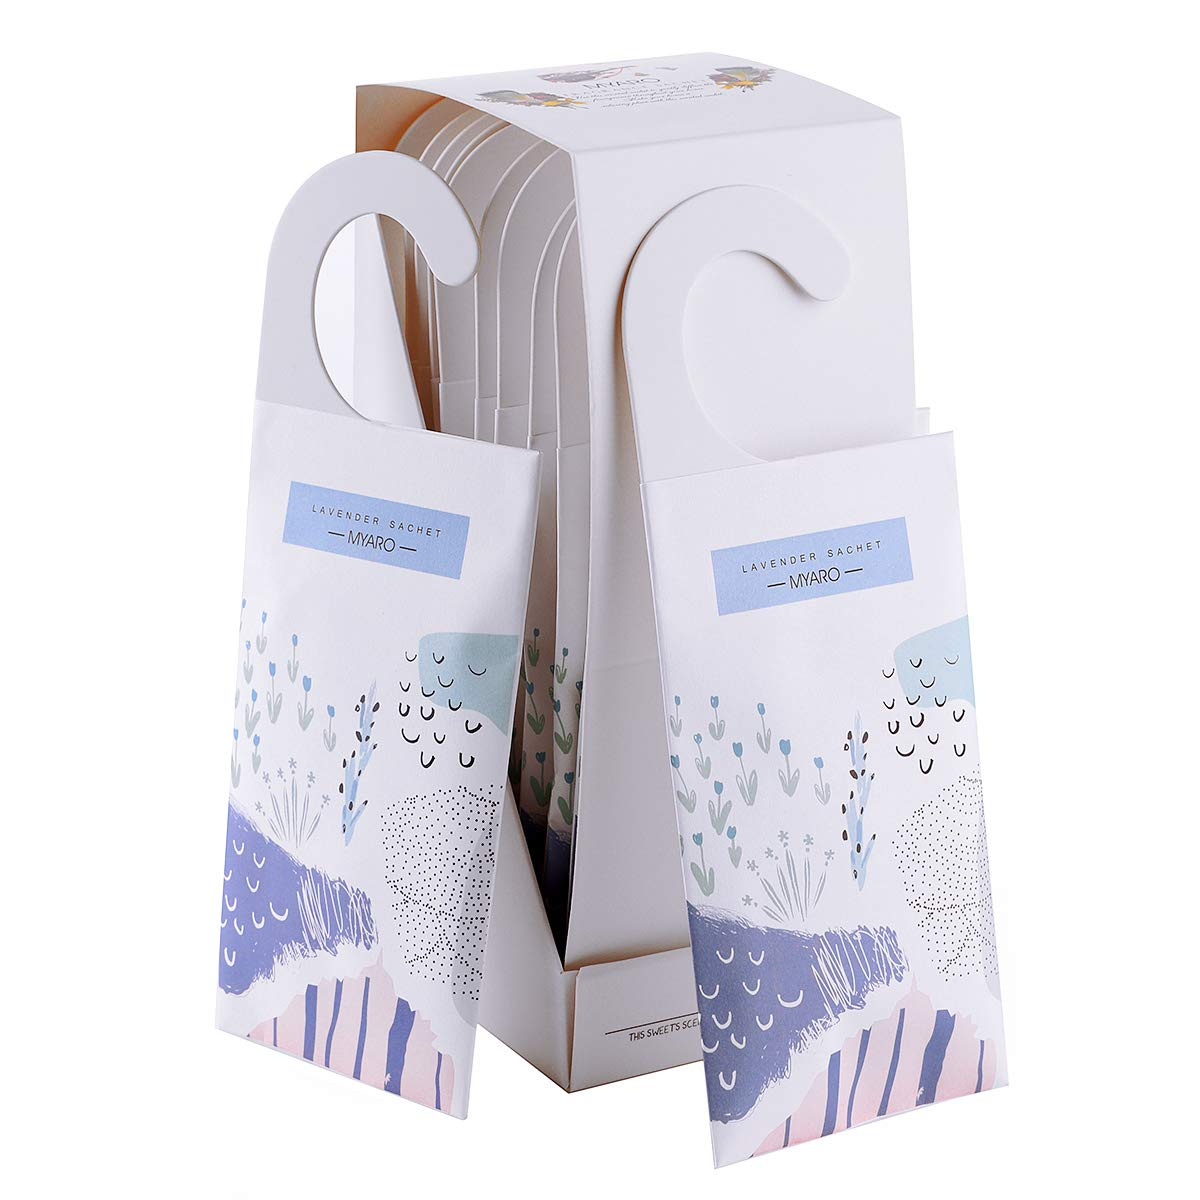 MYARO Large 12 Packs Lavender Scented Sachets for Drawer and Closet with Hanger (Lavender) by MYARO